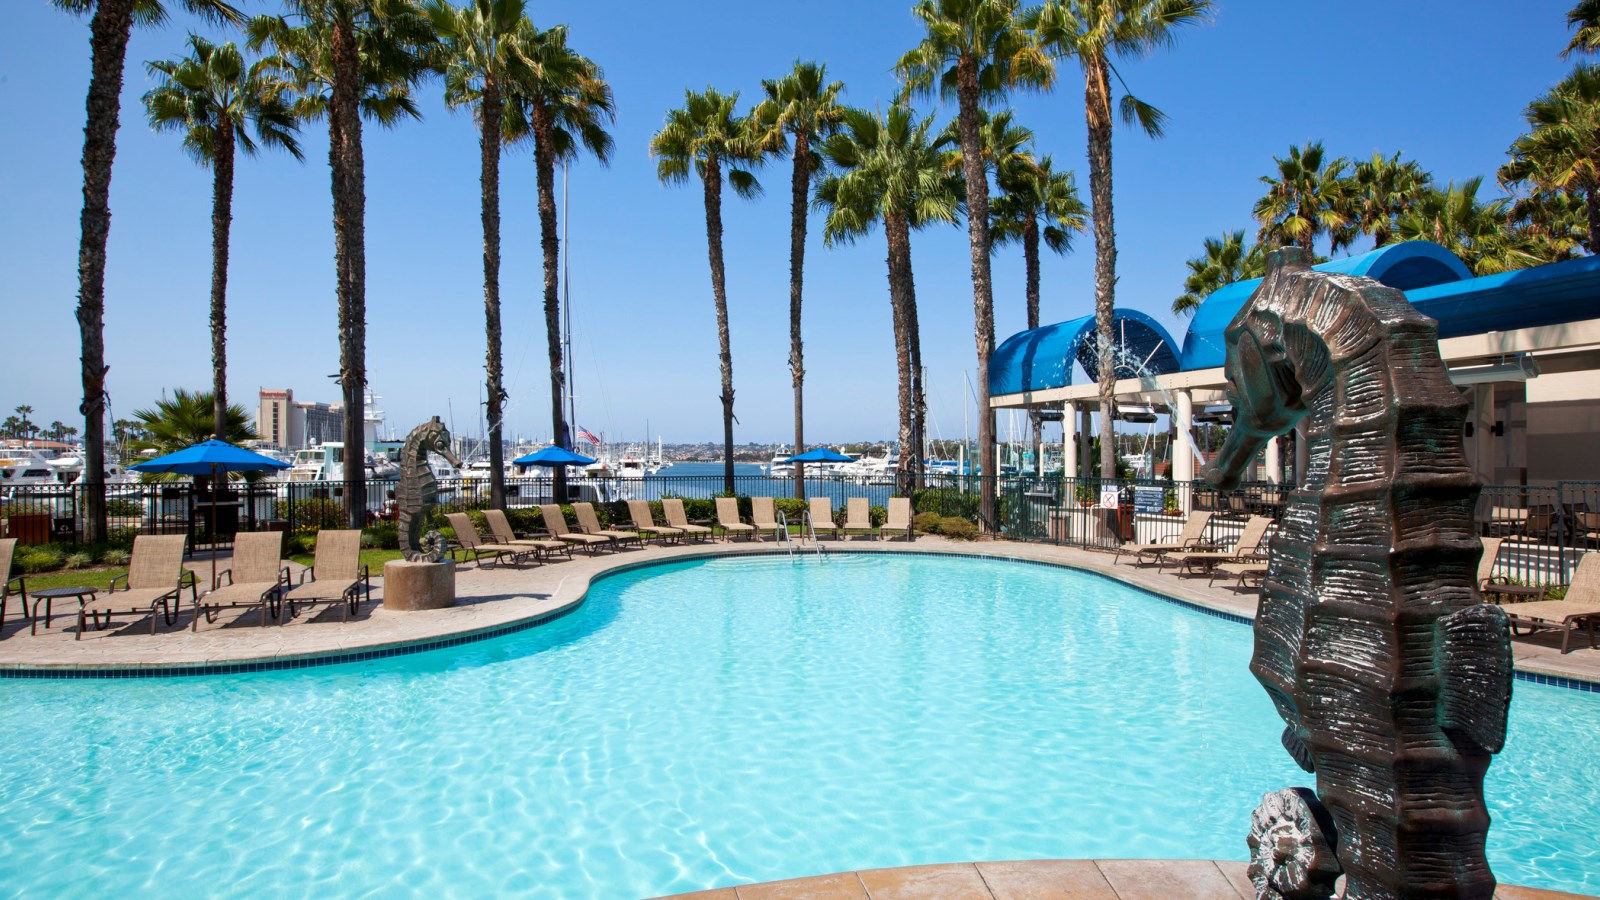 Sheraton San Diego hotel with pools